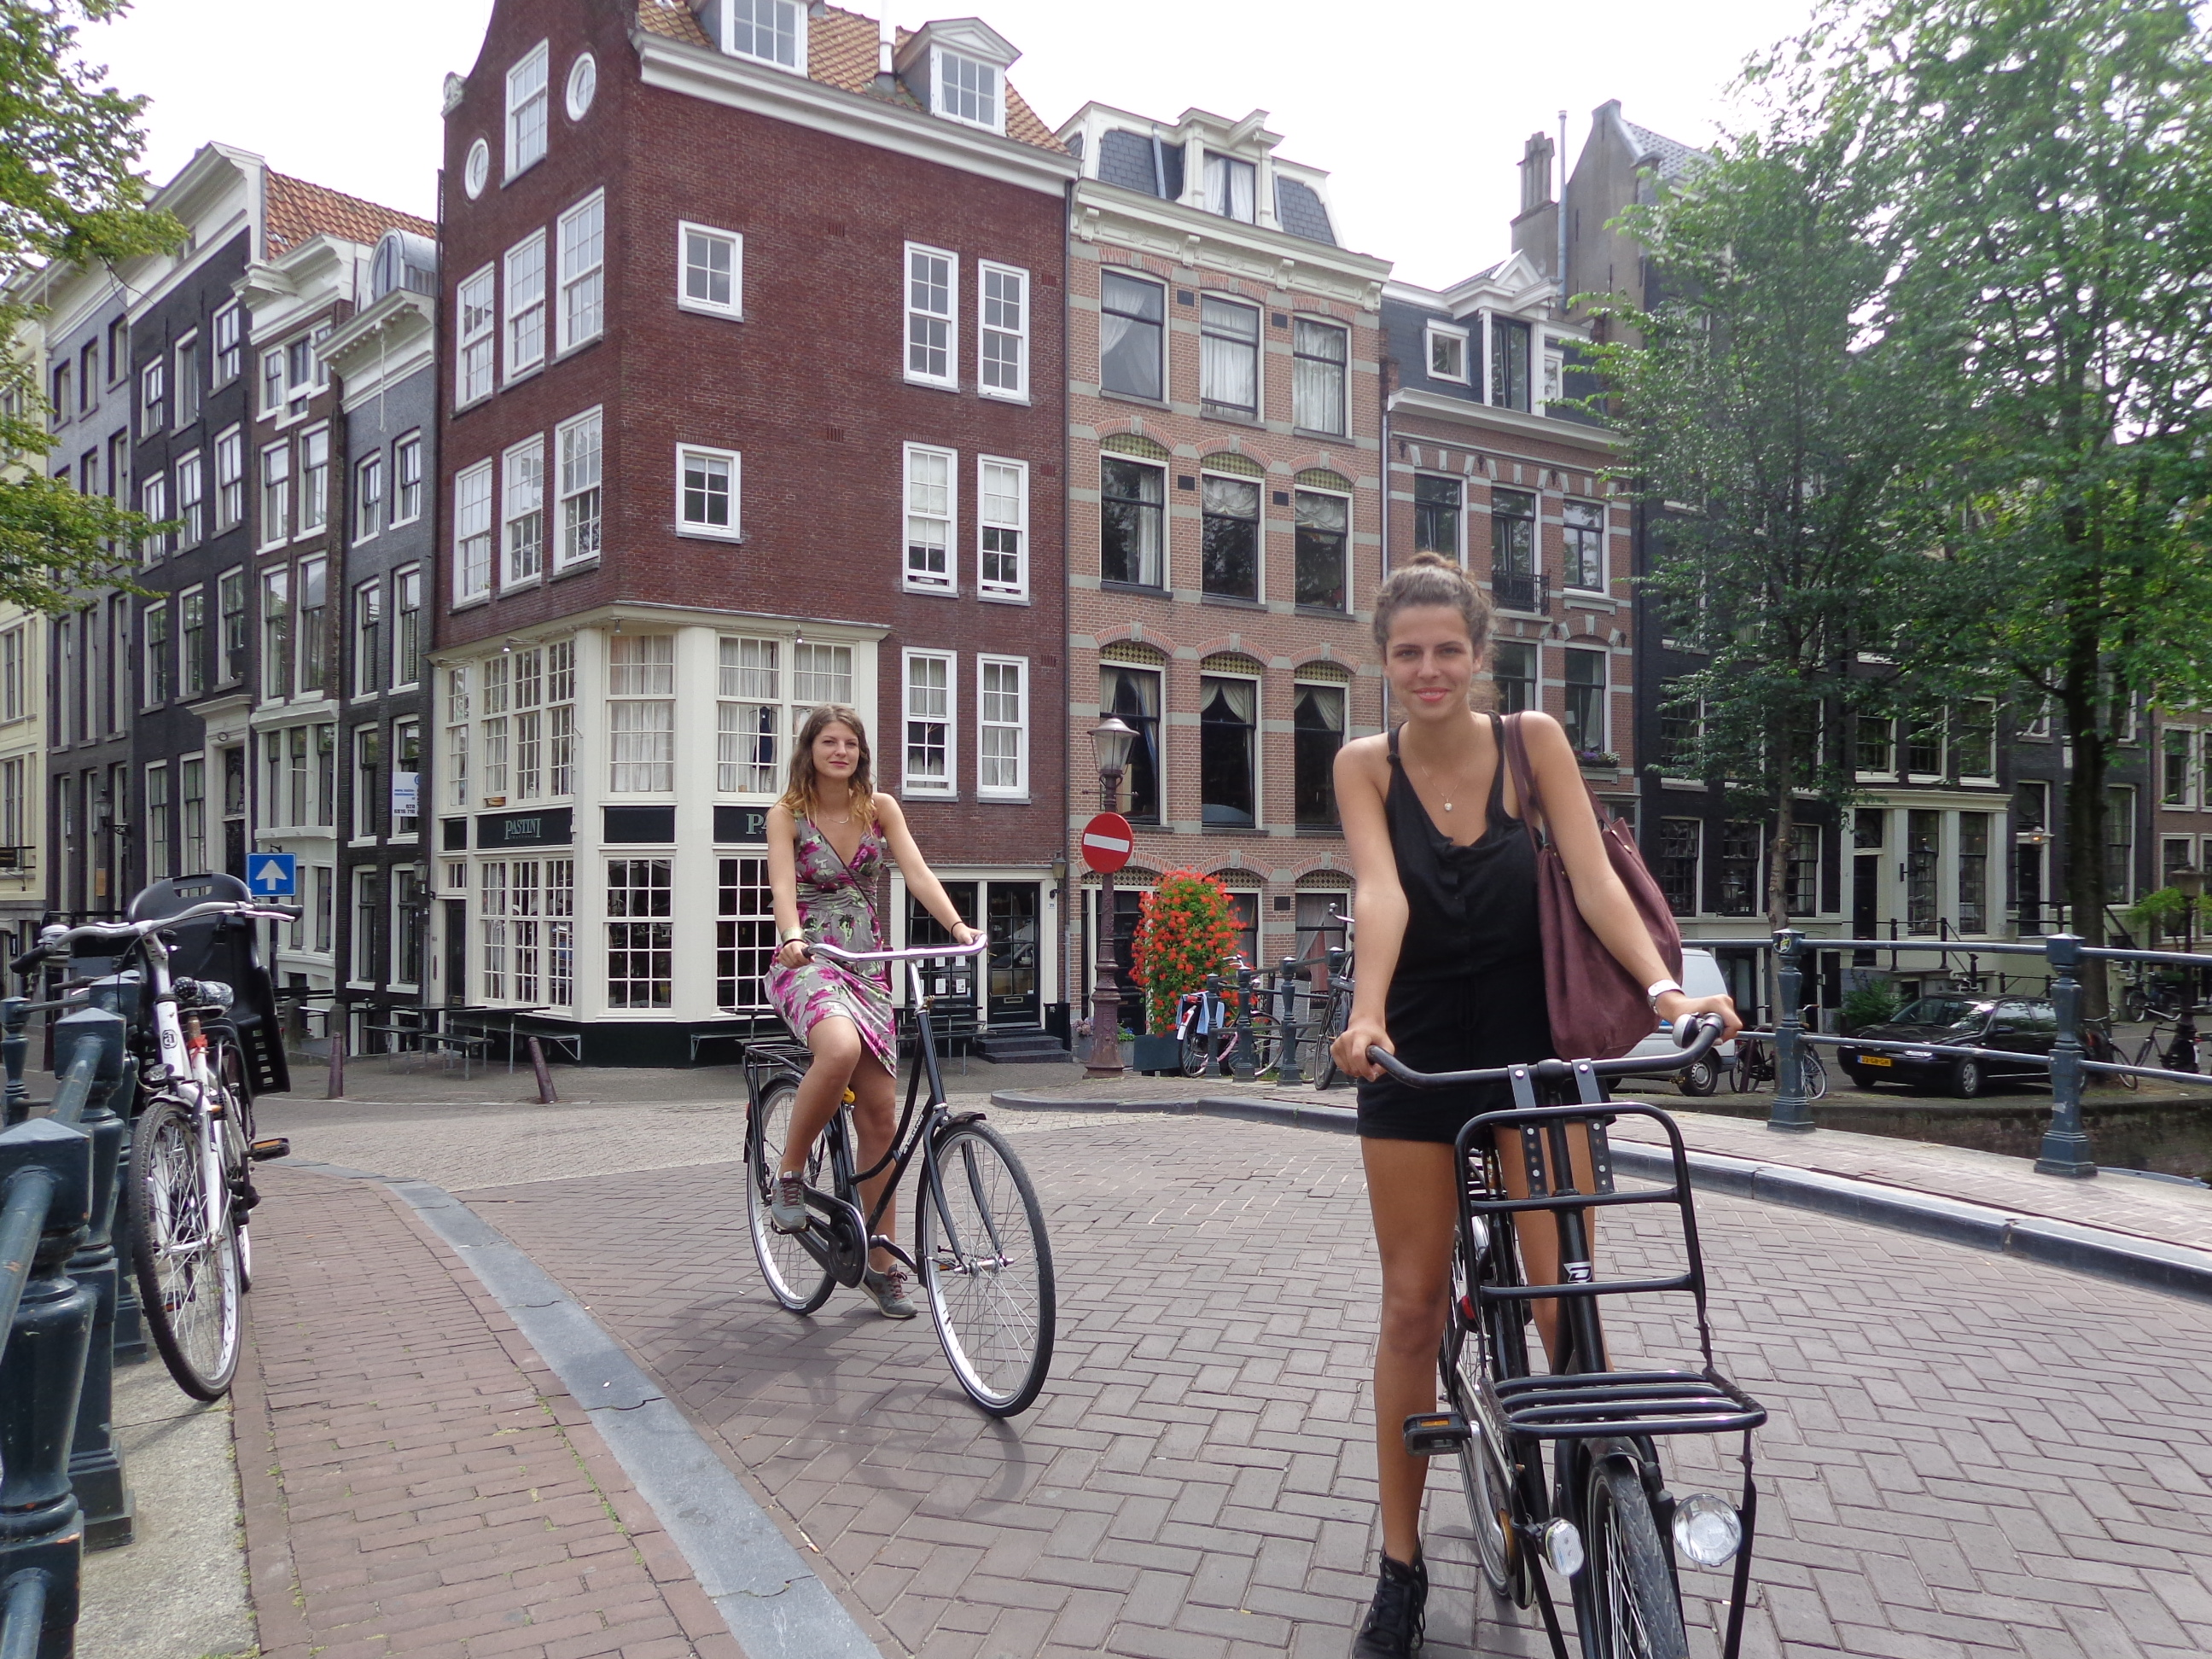 Riding bikes through Amsterdam